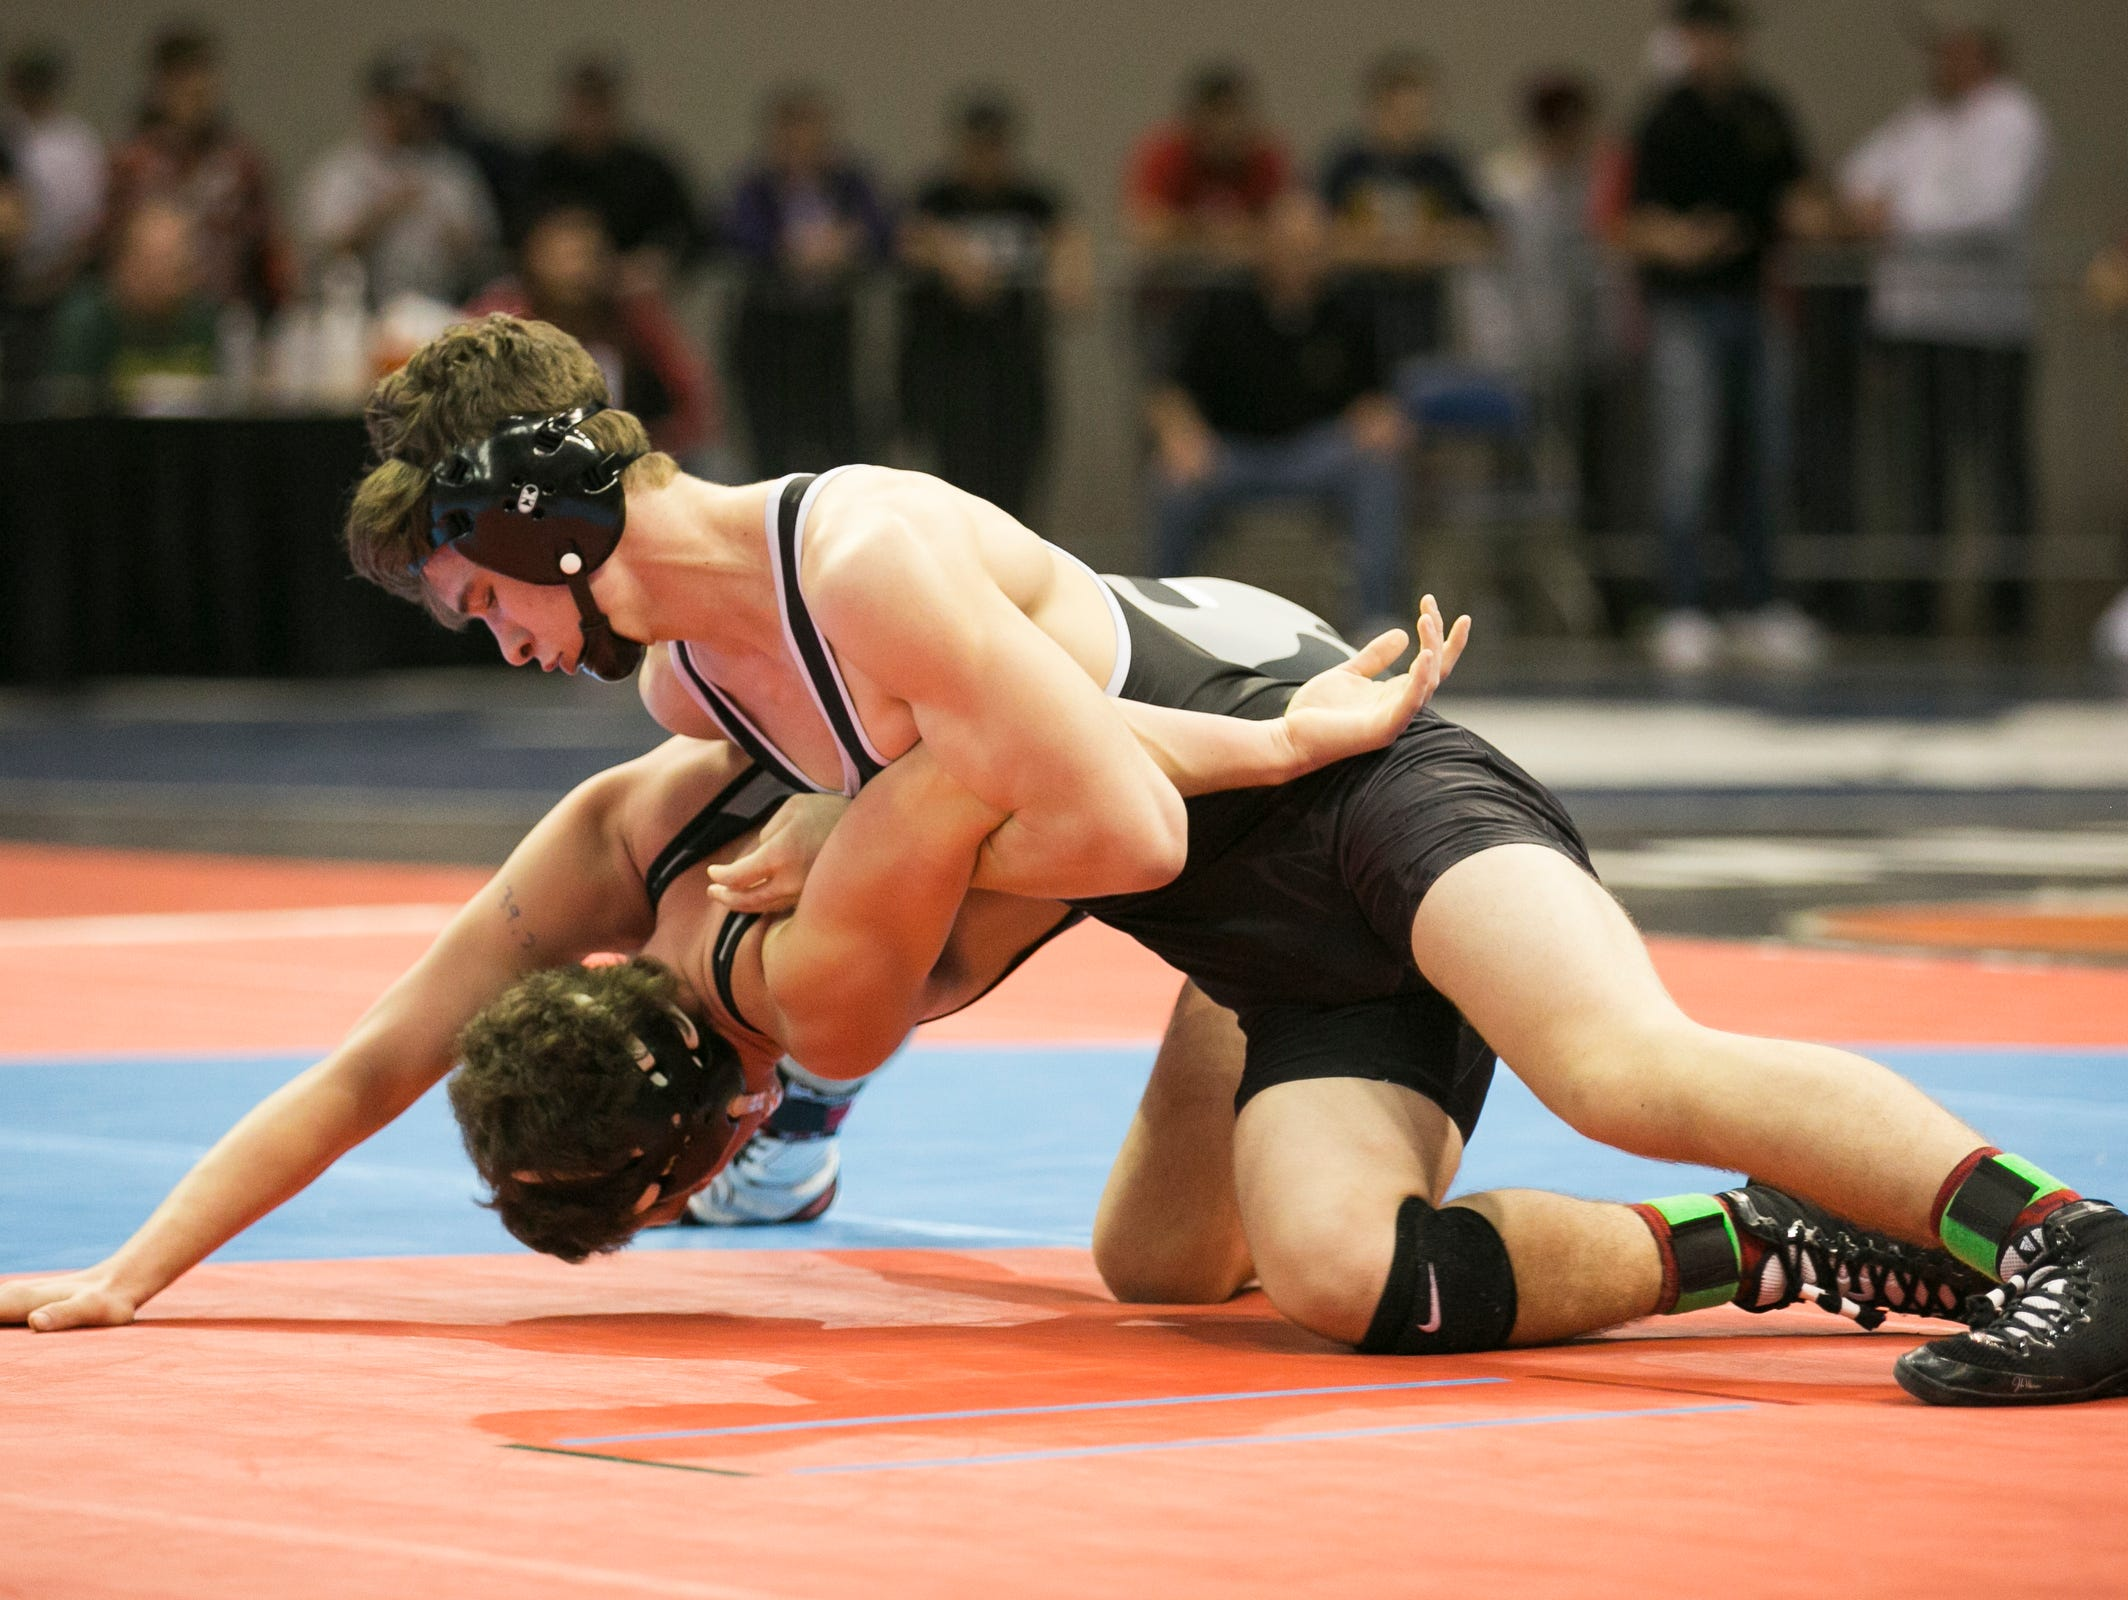 Dayton's Jared Henry holds onto Vale's McKay Bennett at the OSAA state wrestling tournament on Friday, Feb. 26, 2016, at Memorial Coliseum in Portland, Ore. Henry won the match by fall.